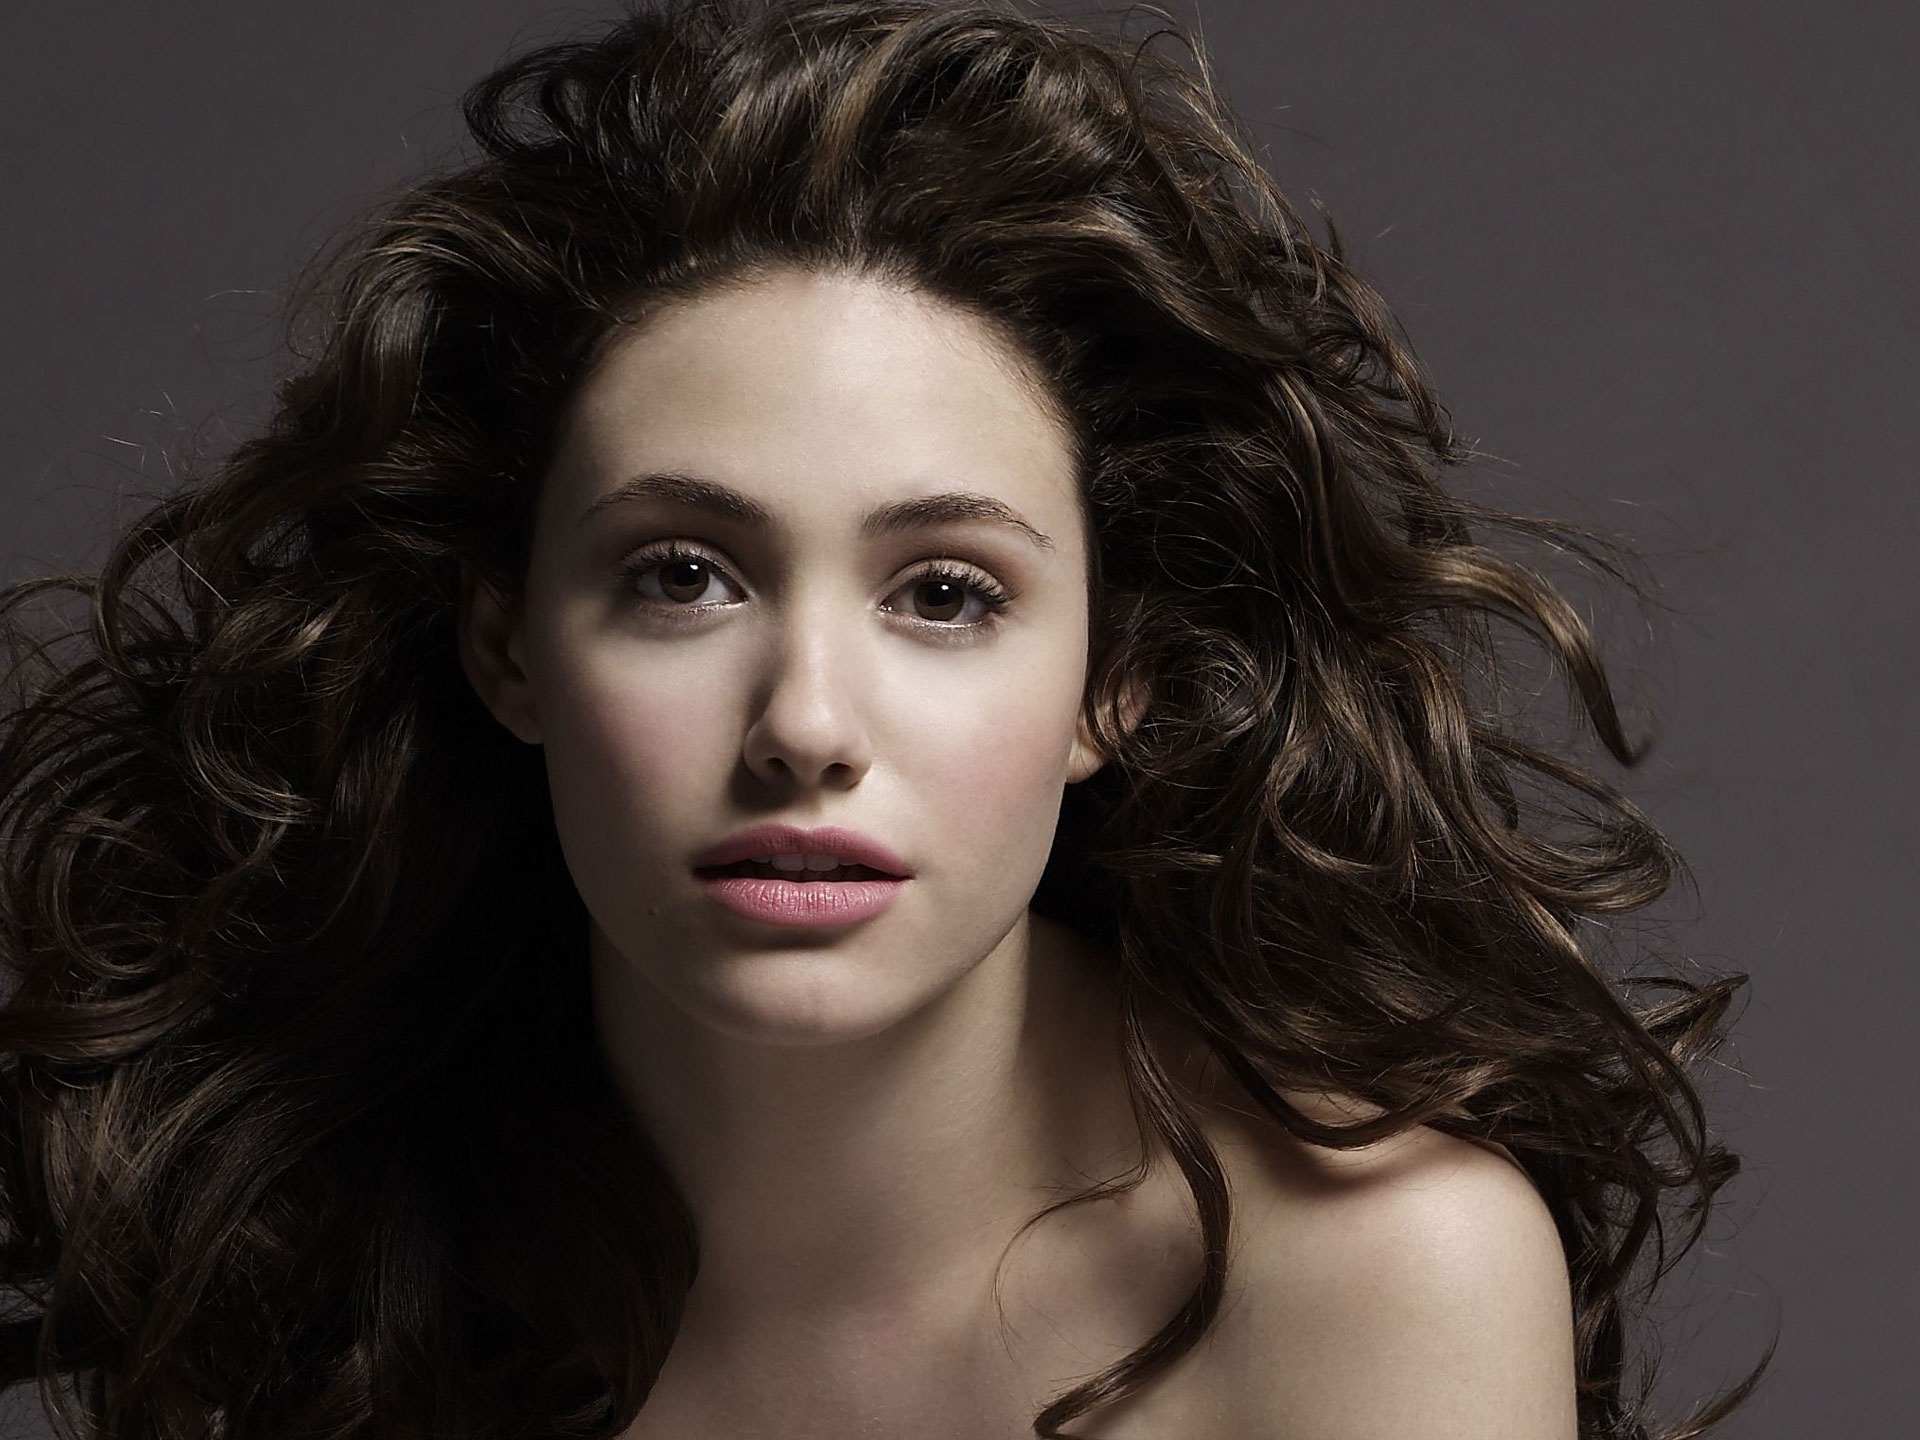 emmy rossum wallpapers hd A1